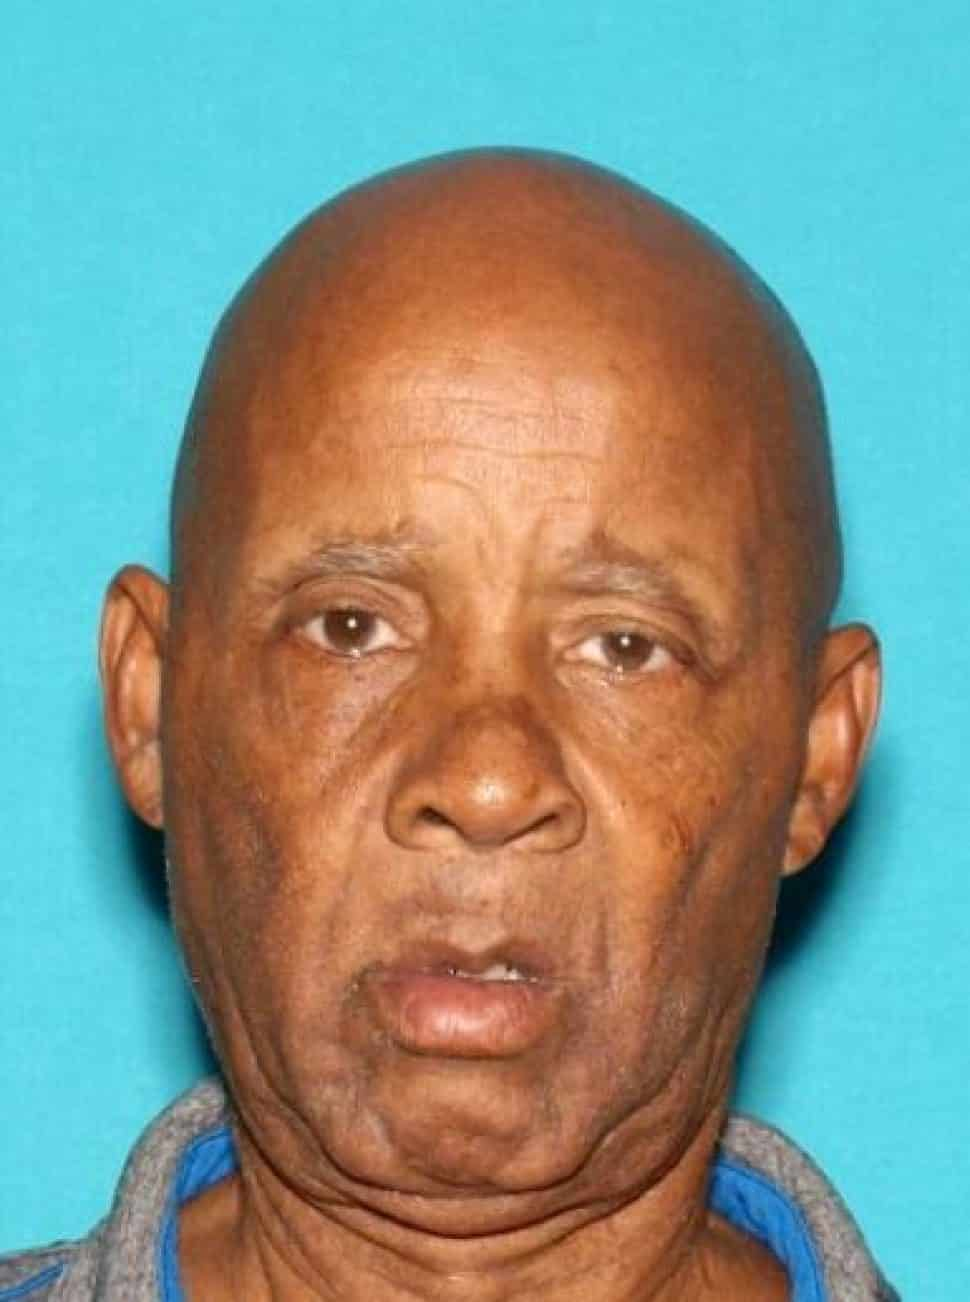 Freddie Phillips, who has dementia, was last seen Sunday when he left his home in the 14500 block of McNab Avenue, which is near the intersection of Woodruff and Rosecrans avenues, authorities said.